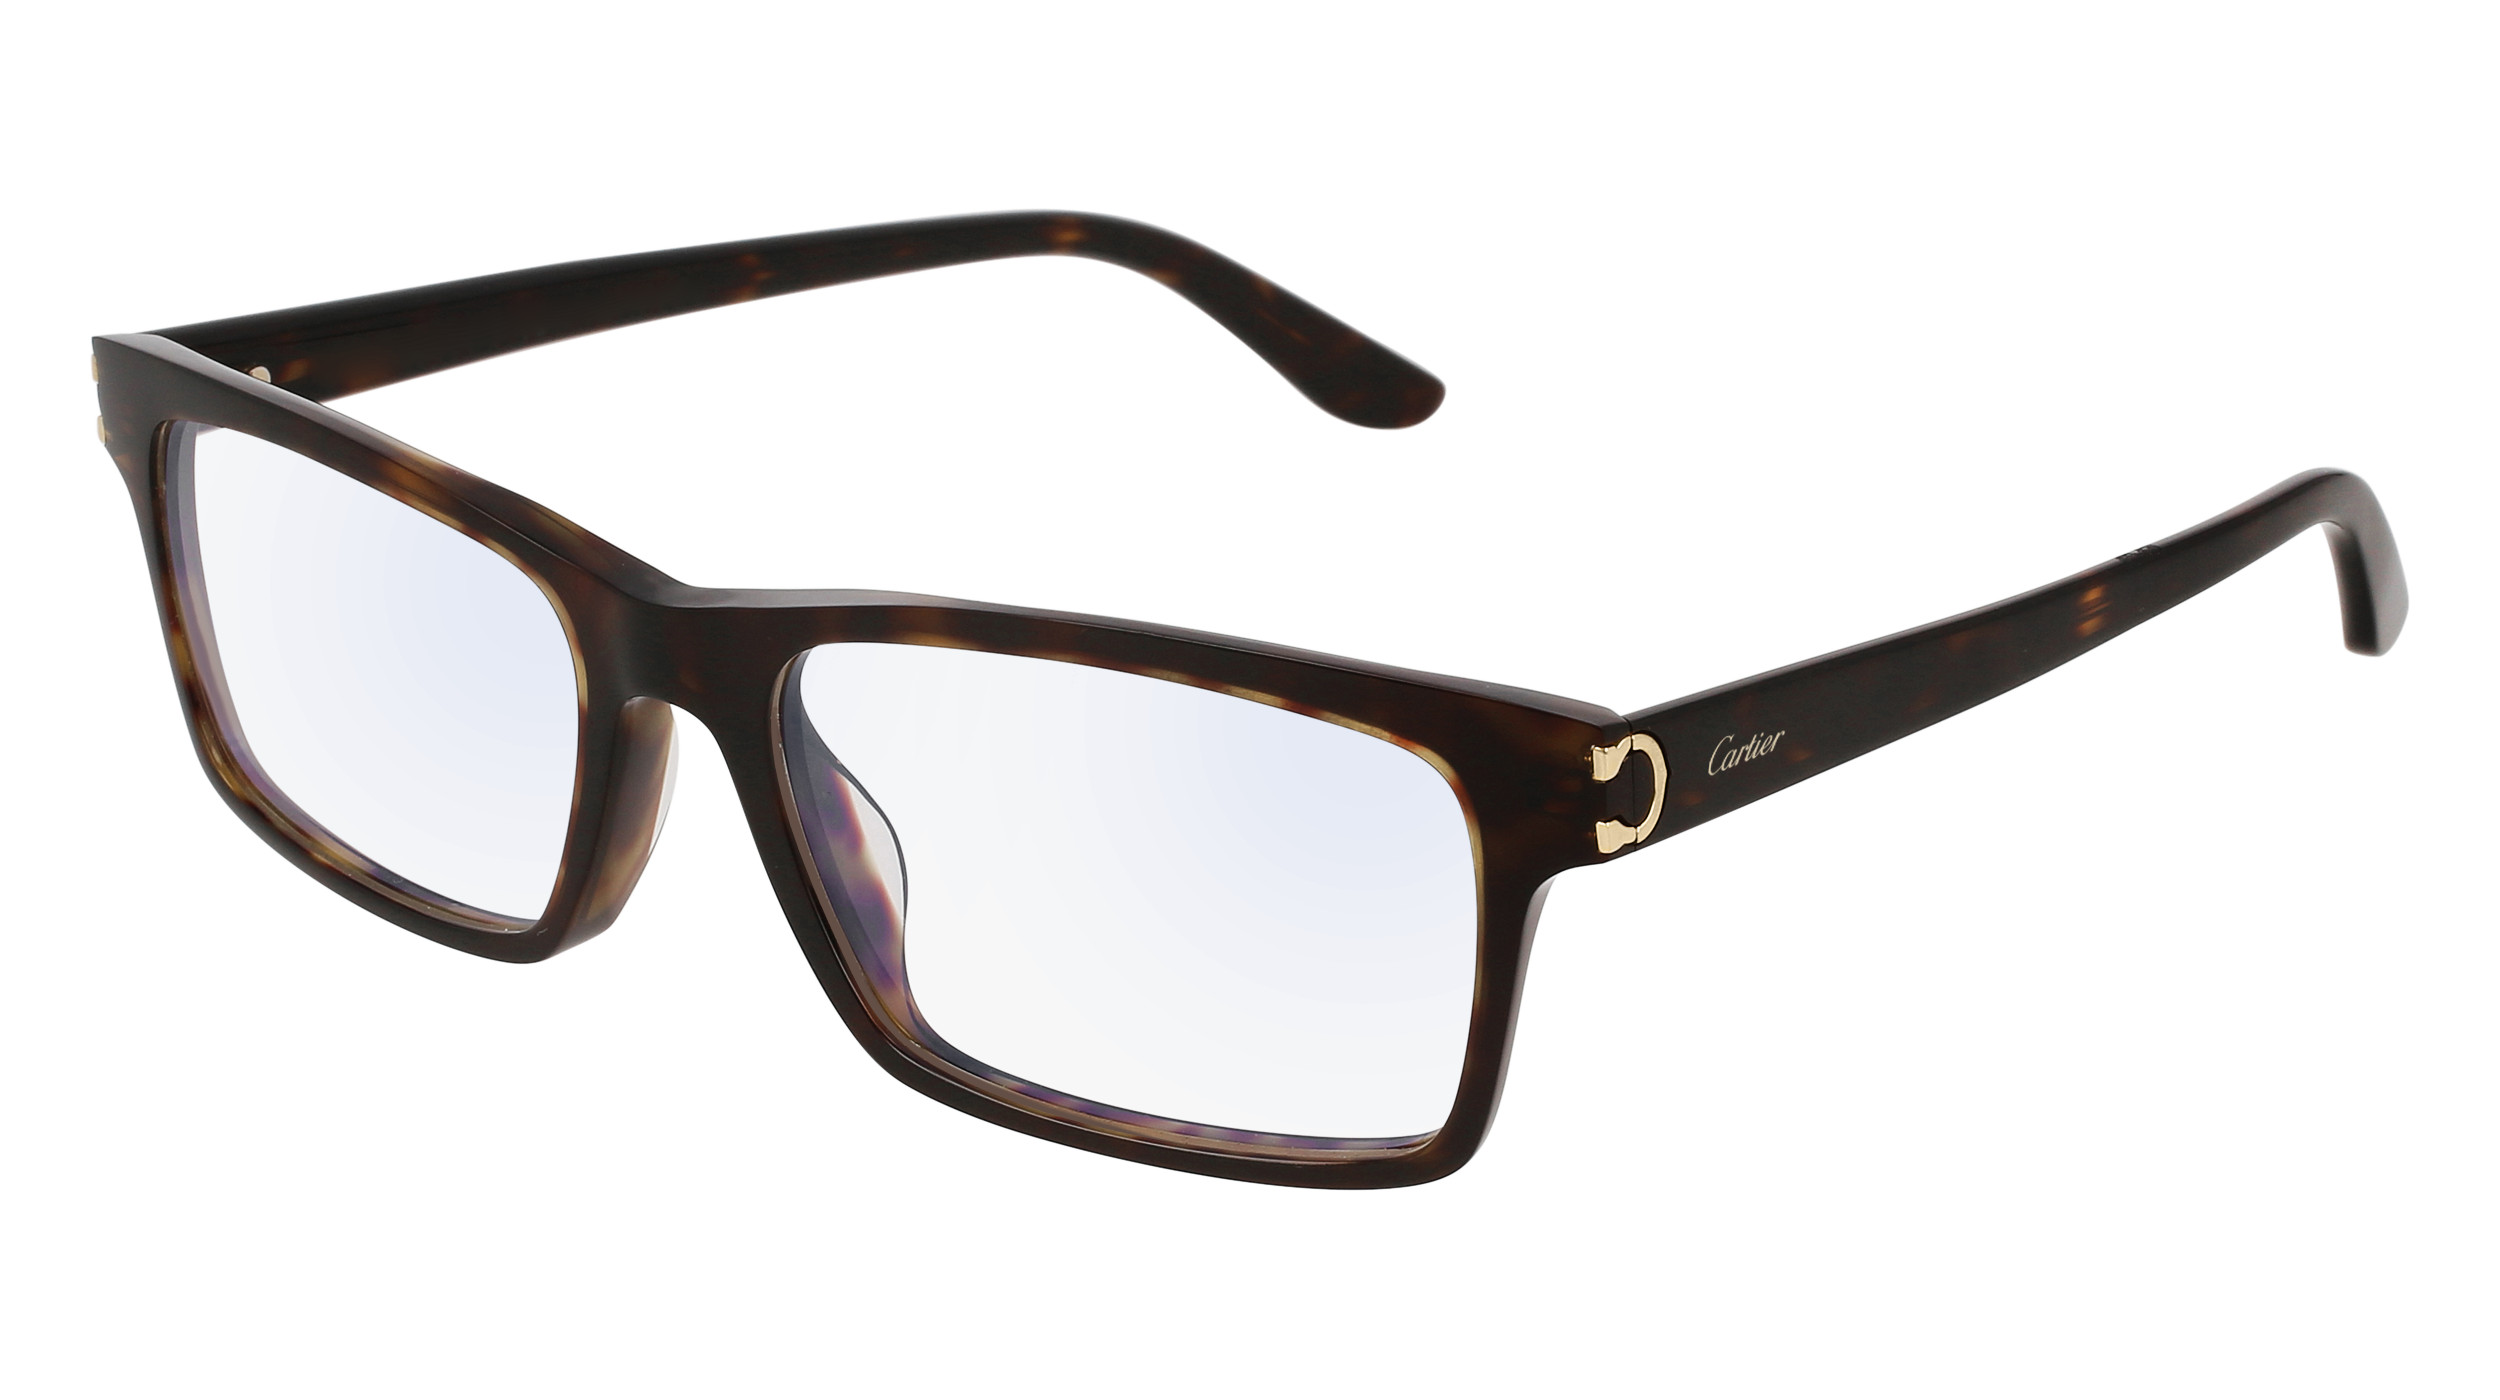 Cartier spectacle frame black womens